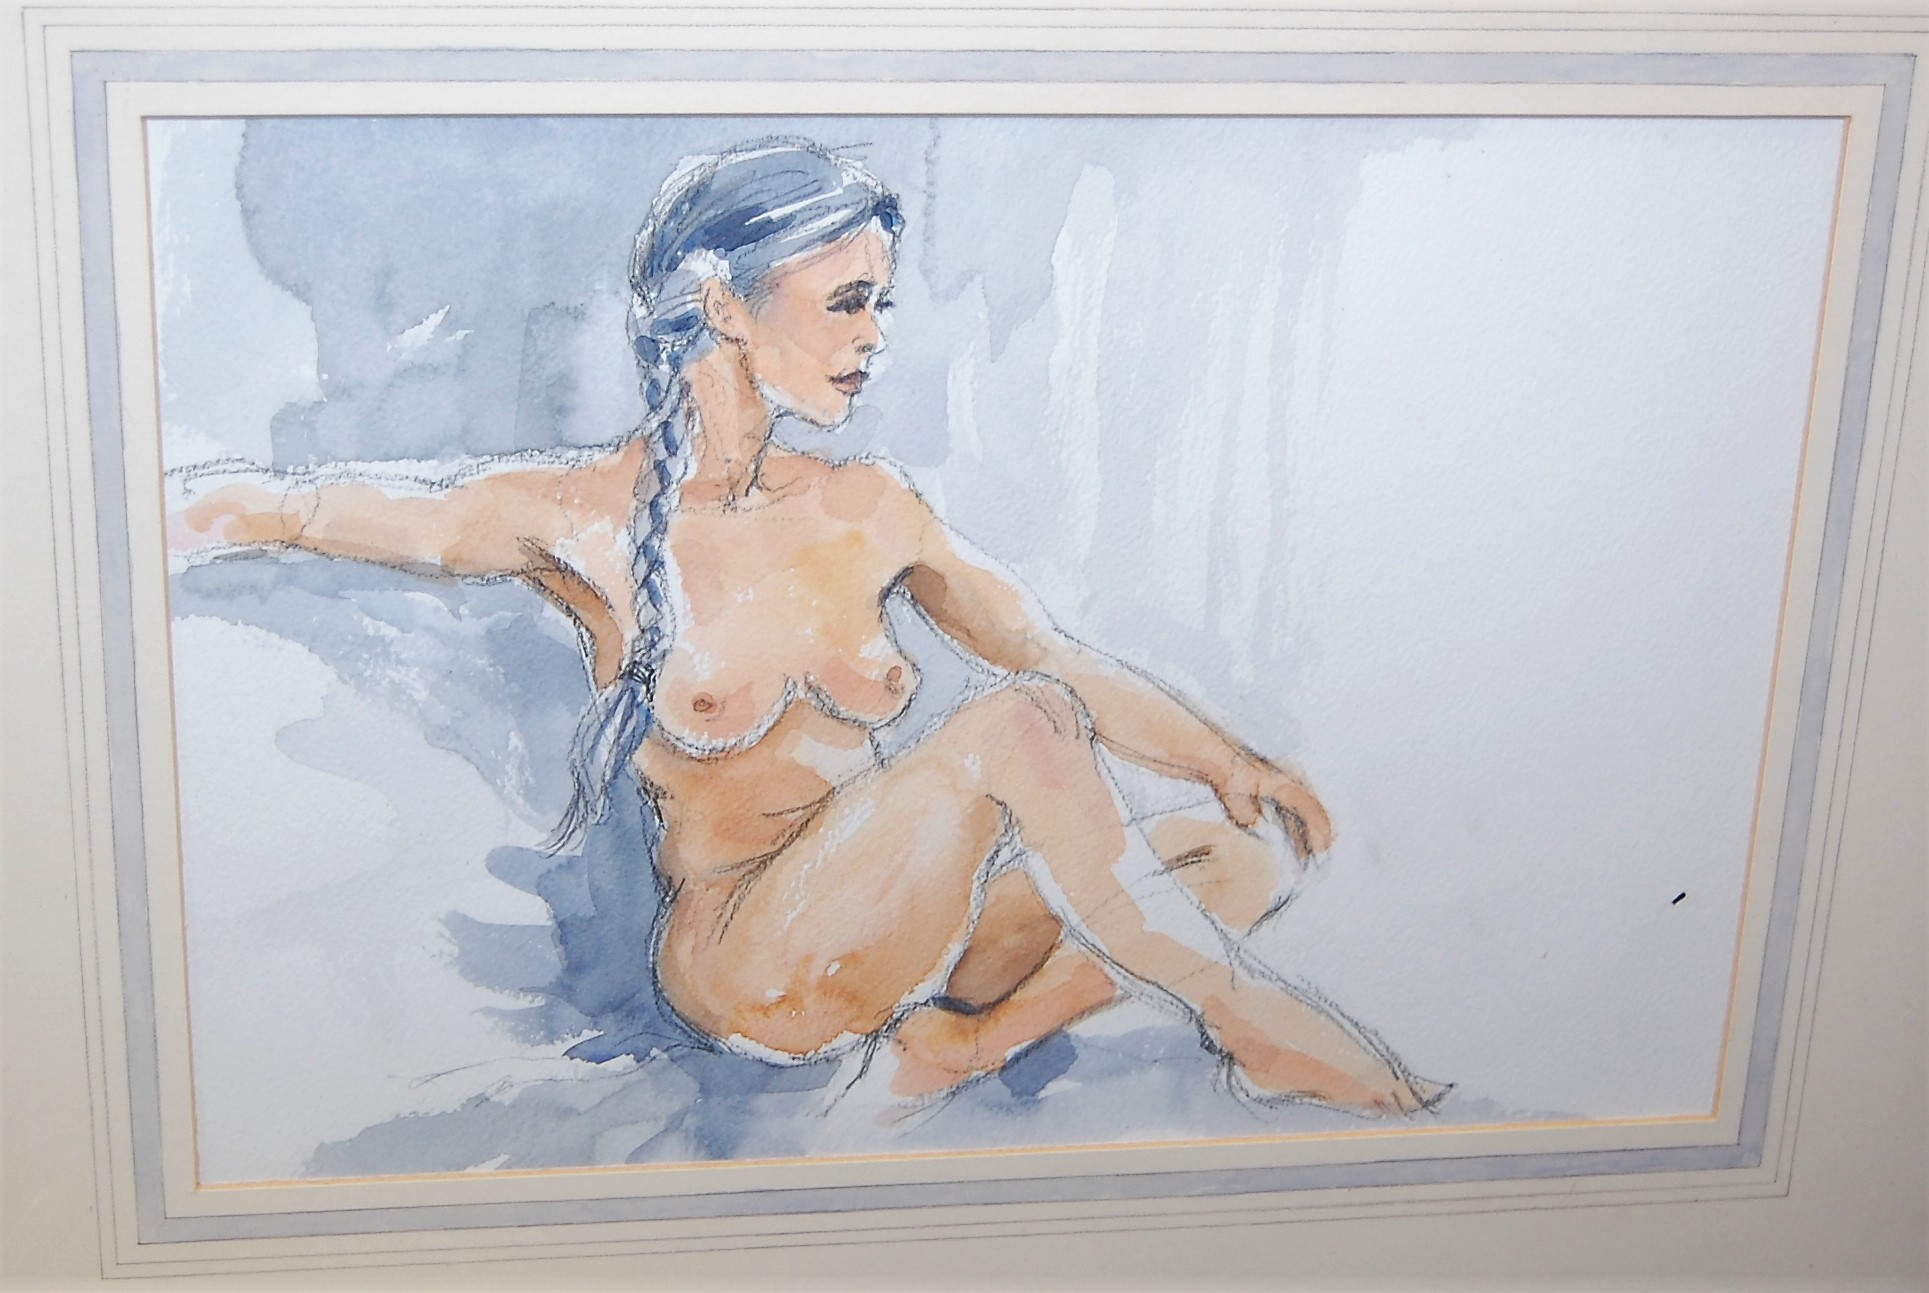 Lot 1055 - Katrinn - Female nude, oil on board, 34 x 26.5cm ; together with a female nude watercolour study and